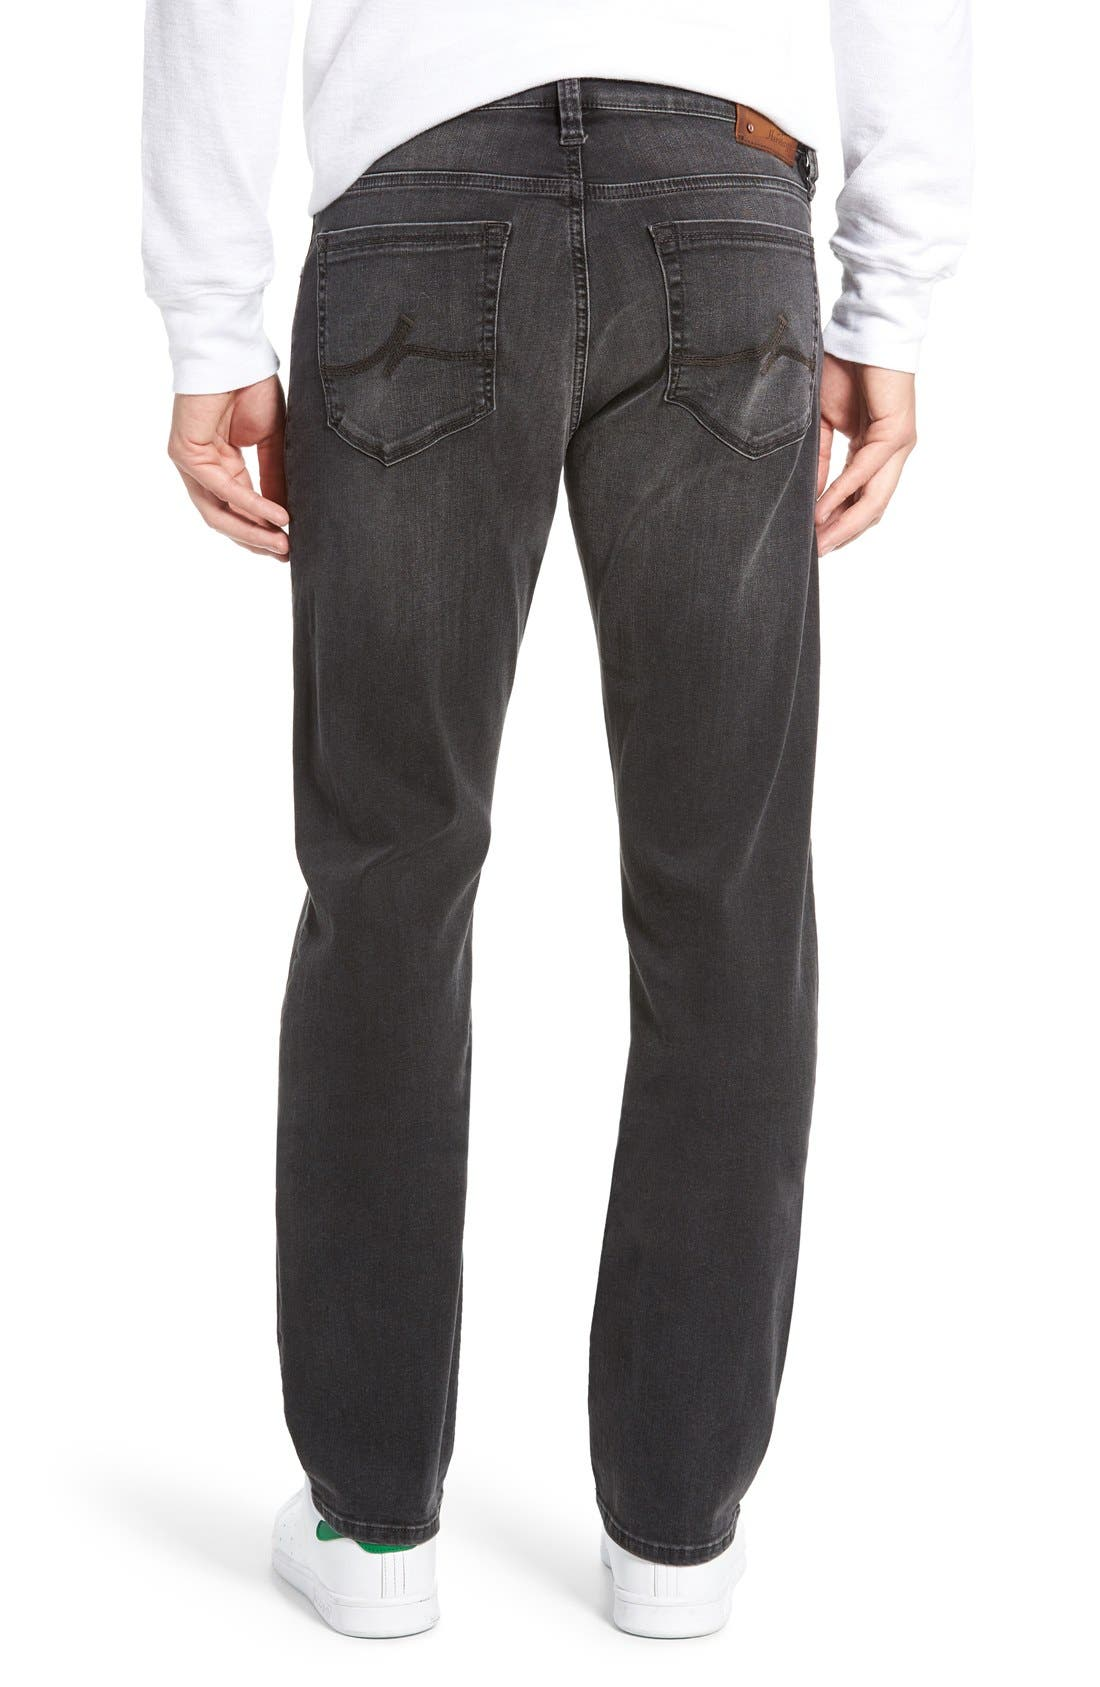 'Courage' Straight Leg Jeans,                             Alternate thumbnail 2, color,                             Courage Coal Soft